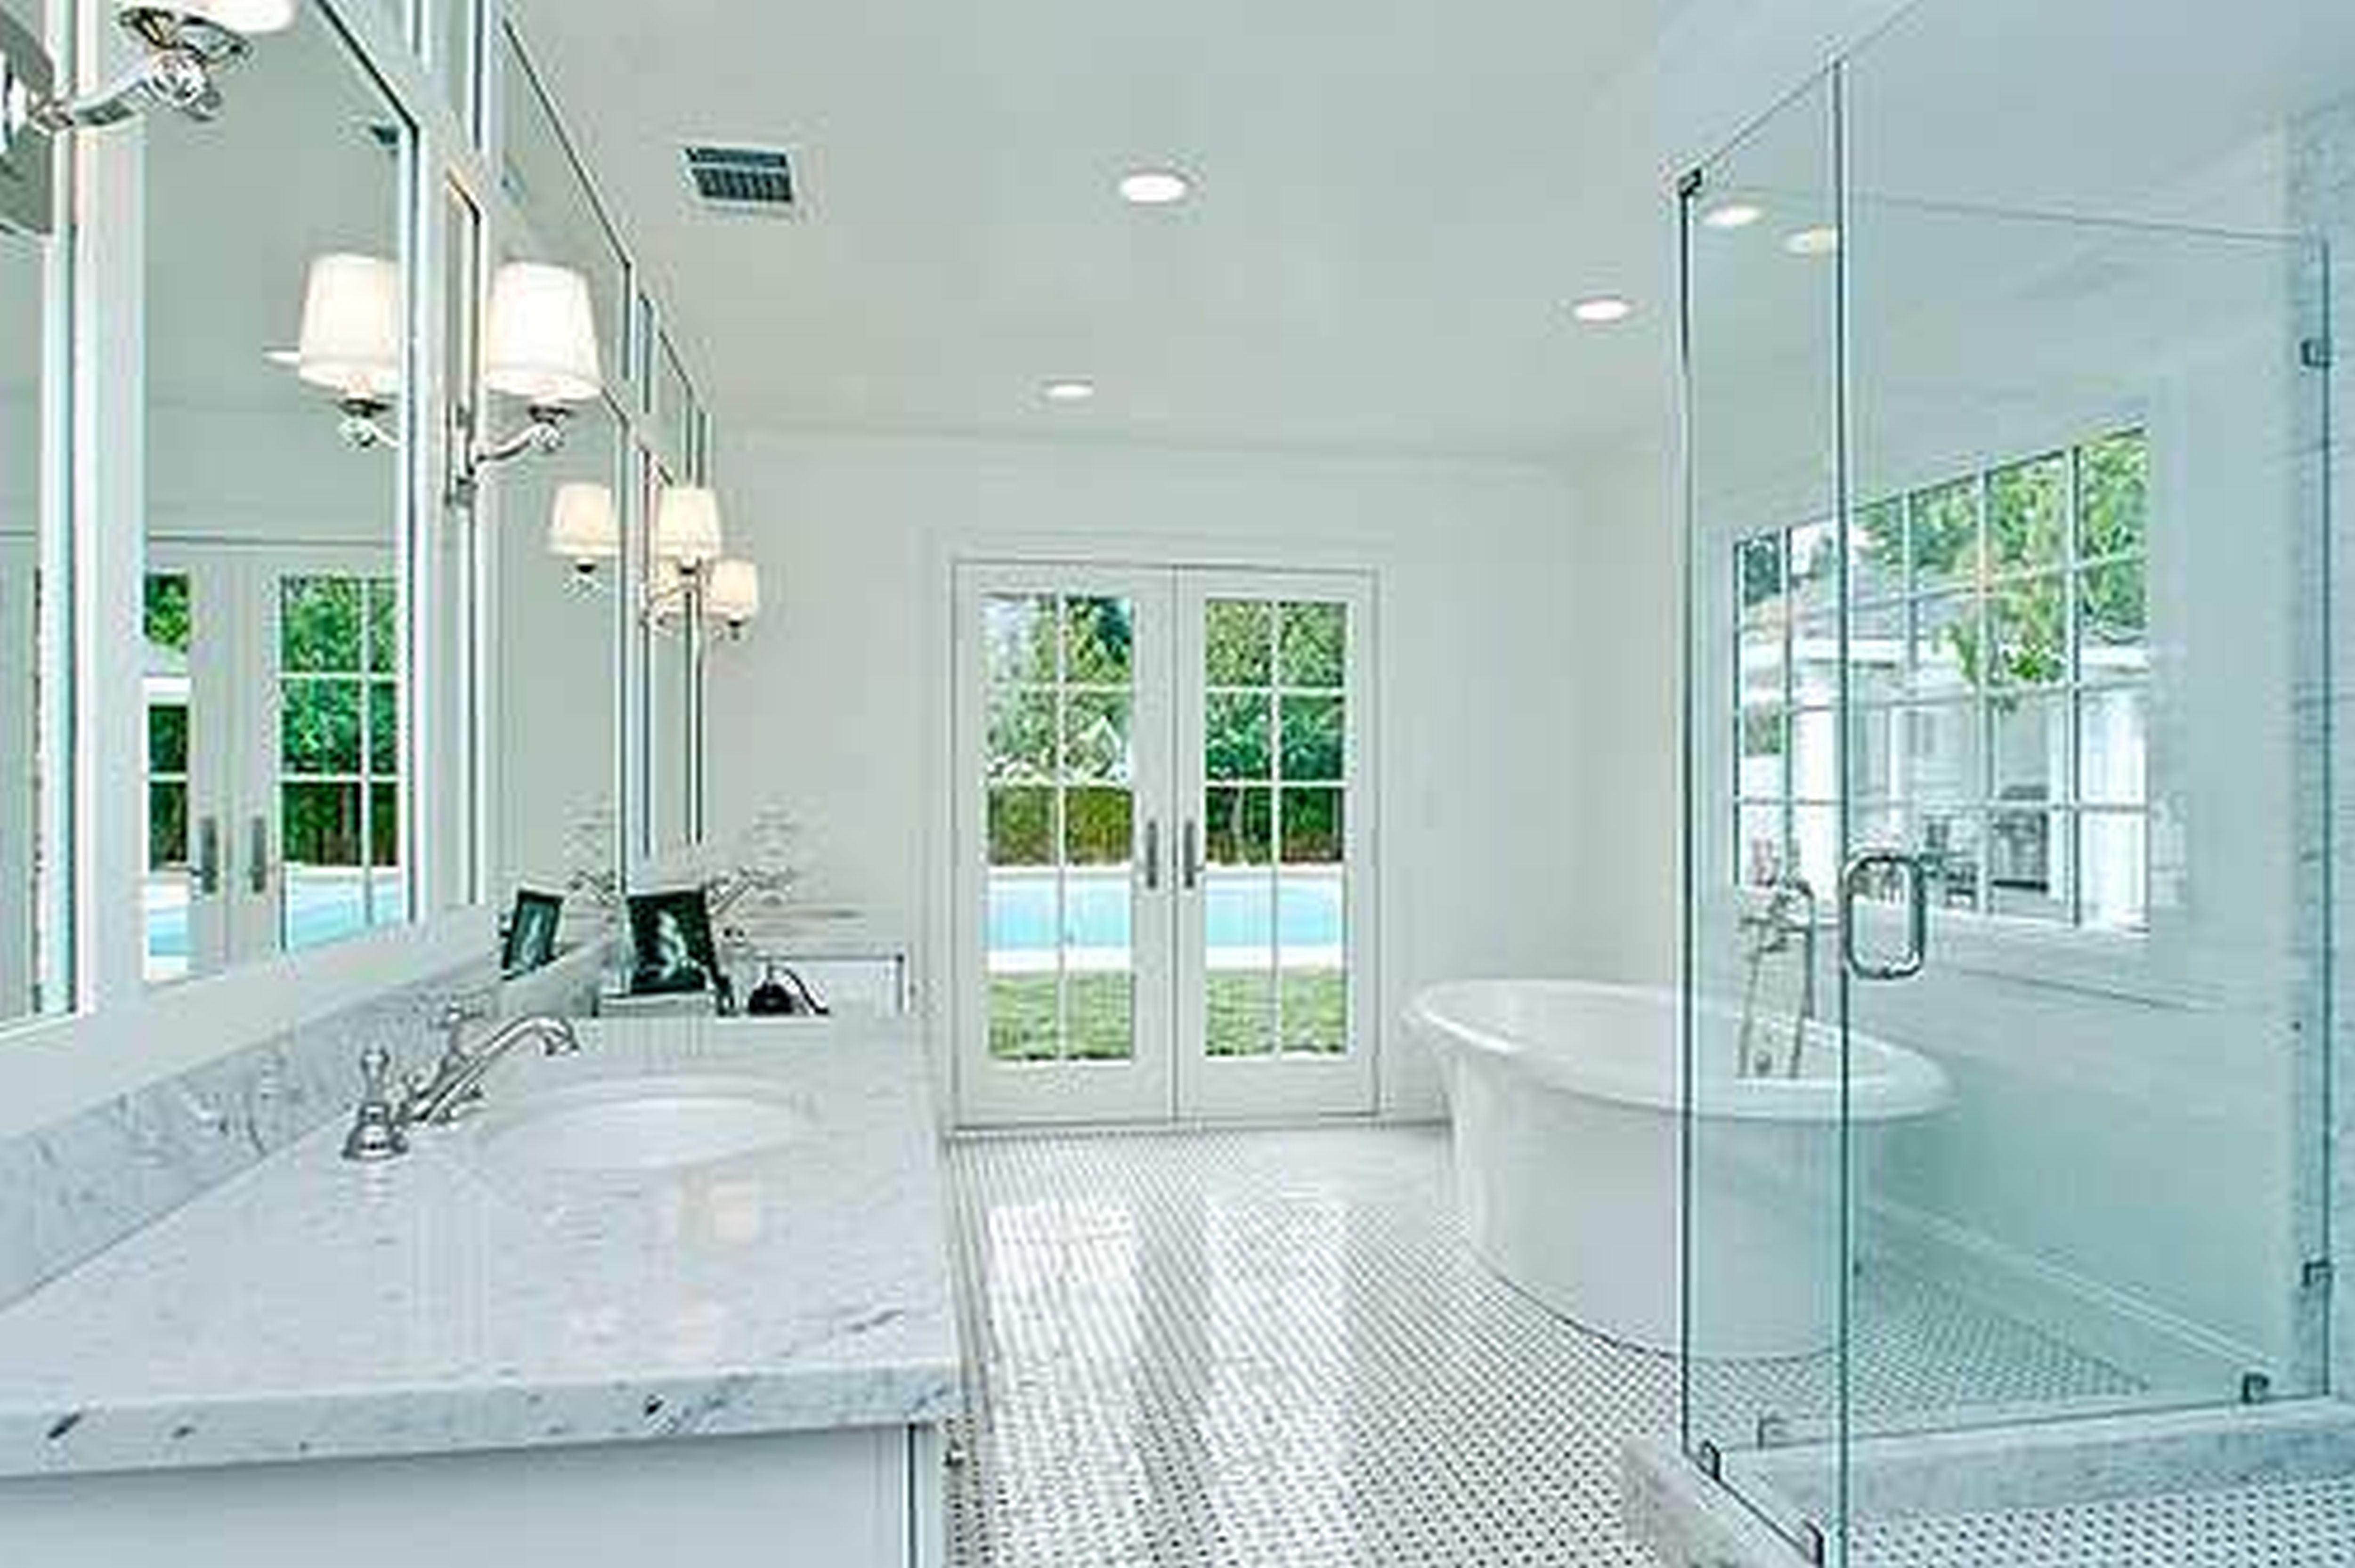 wood framed mirrors mirrored frames large bathroom mirror inch within long frameless mirror image 20